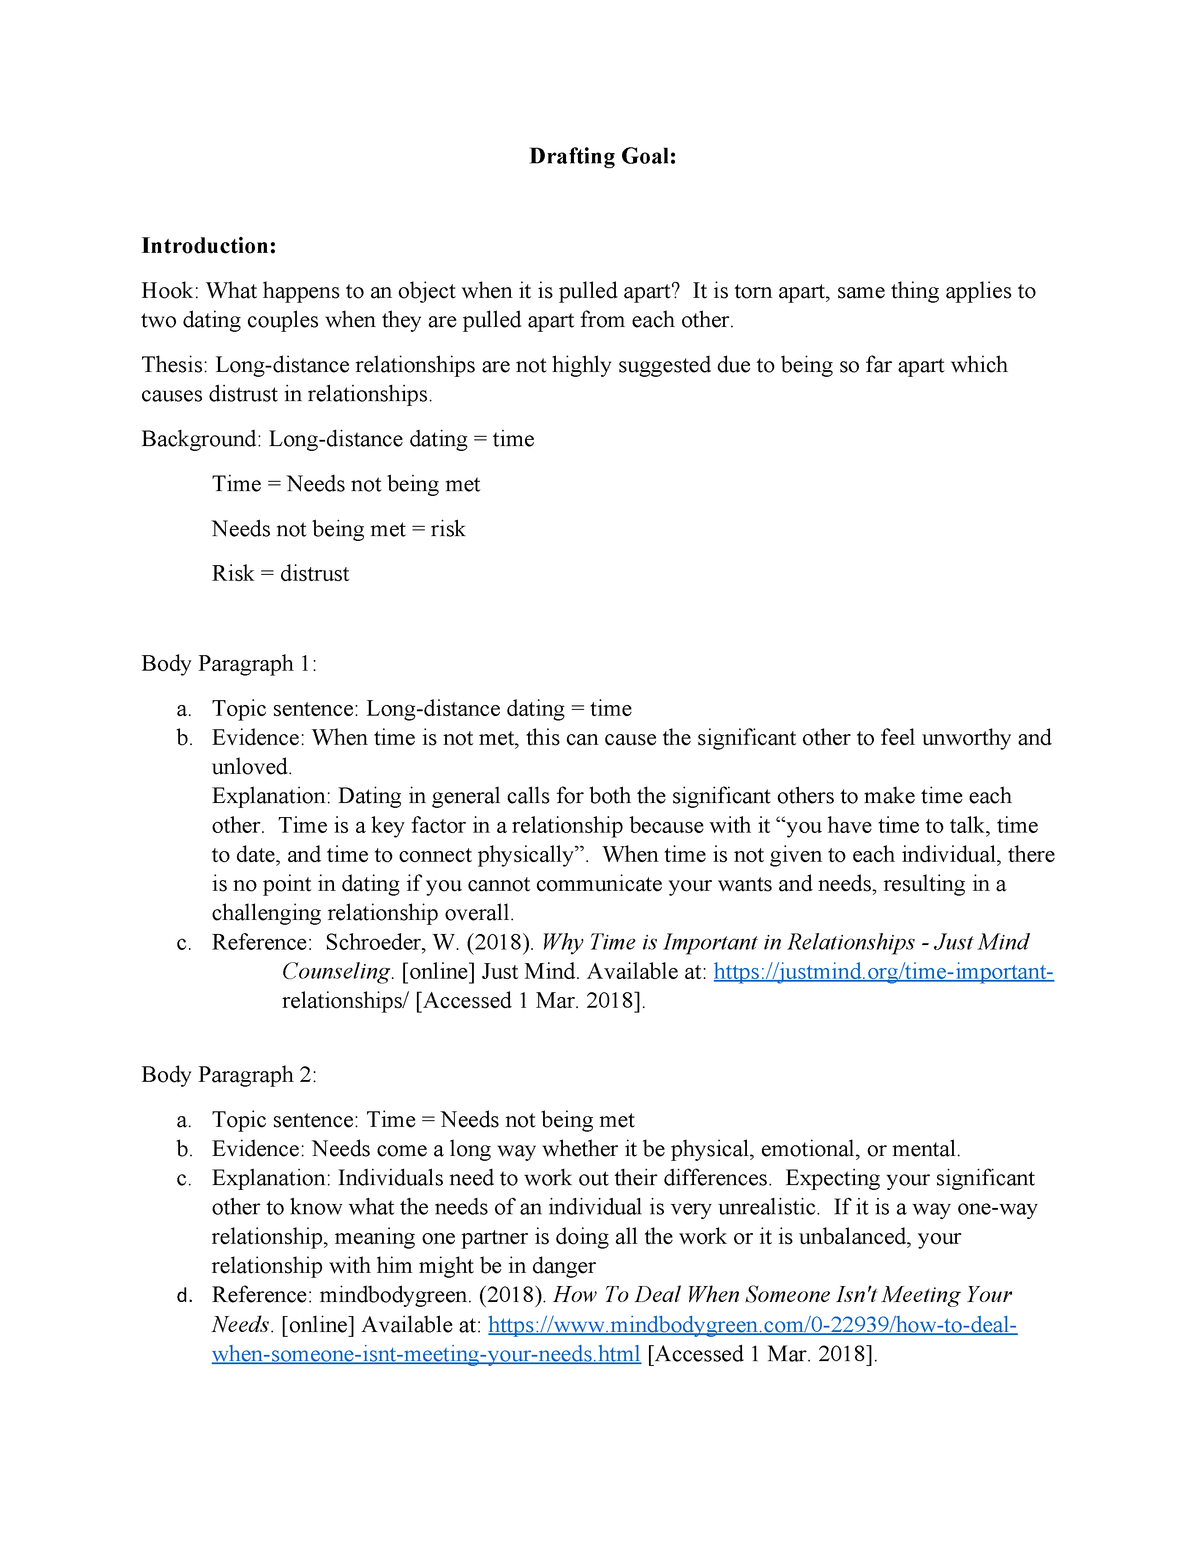 Causal drafting - essay - ENG-106 English Composition II